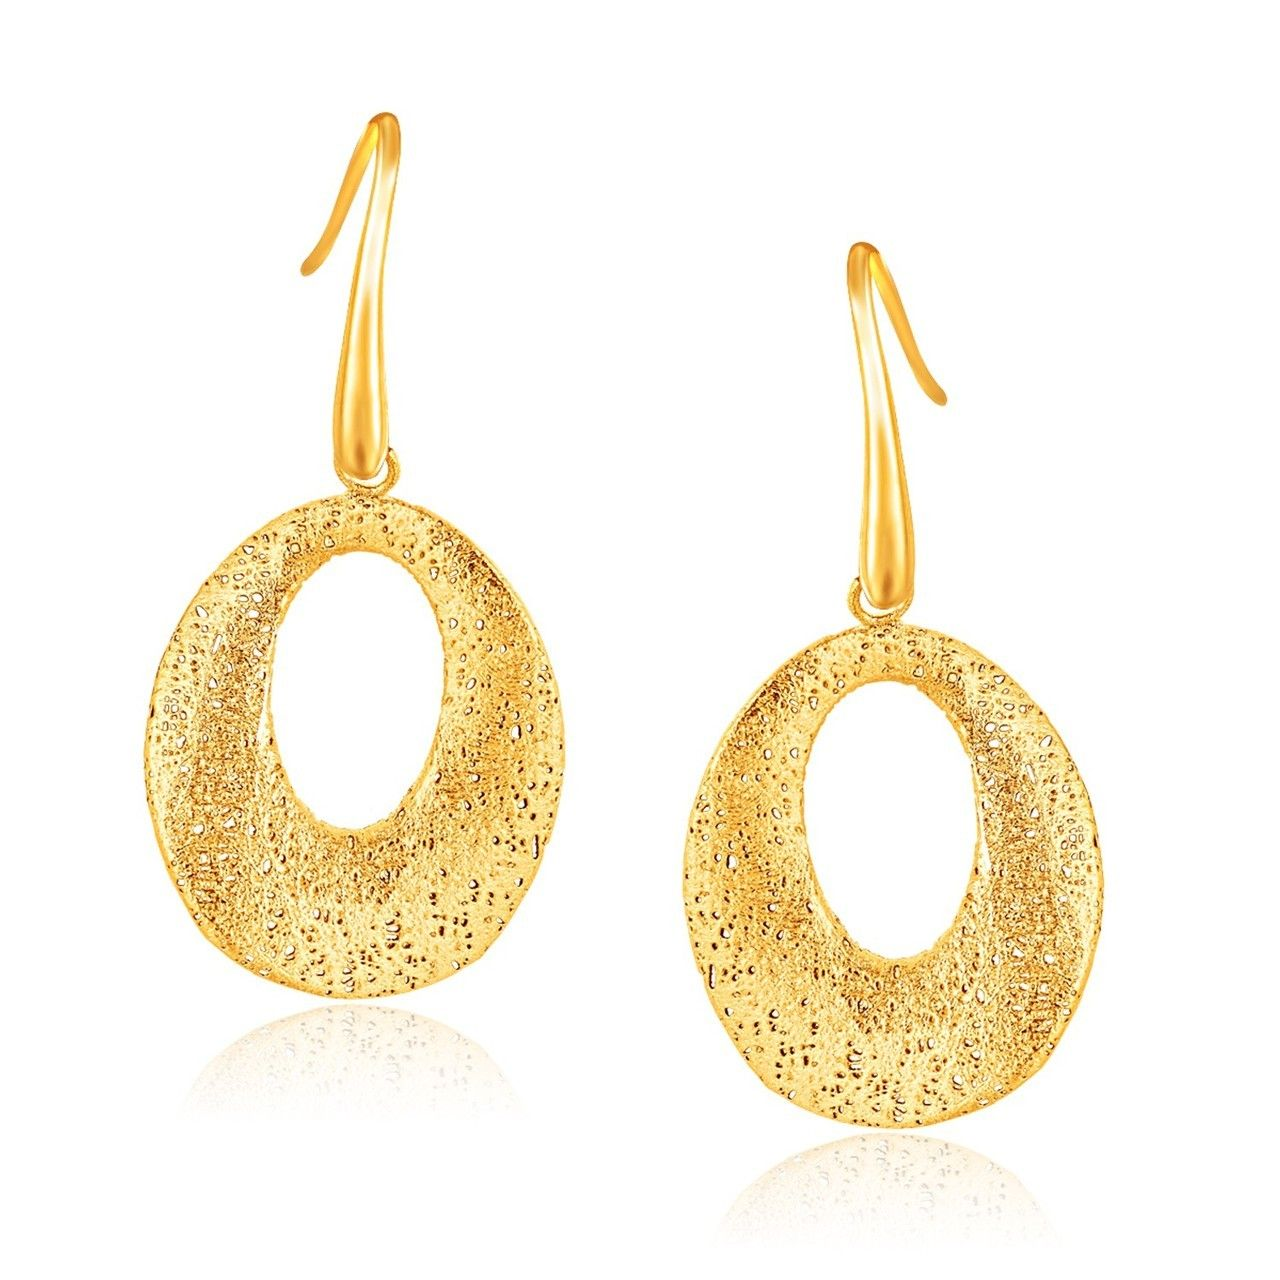 Gold Luxury Jewelry High Quality Gold Earrings Gold Jewelry Gifts